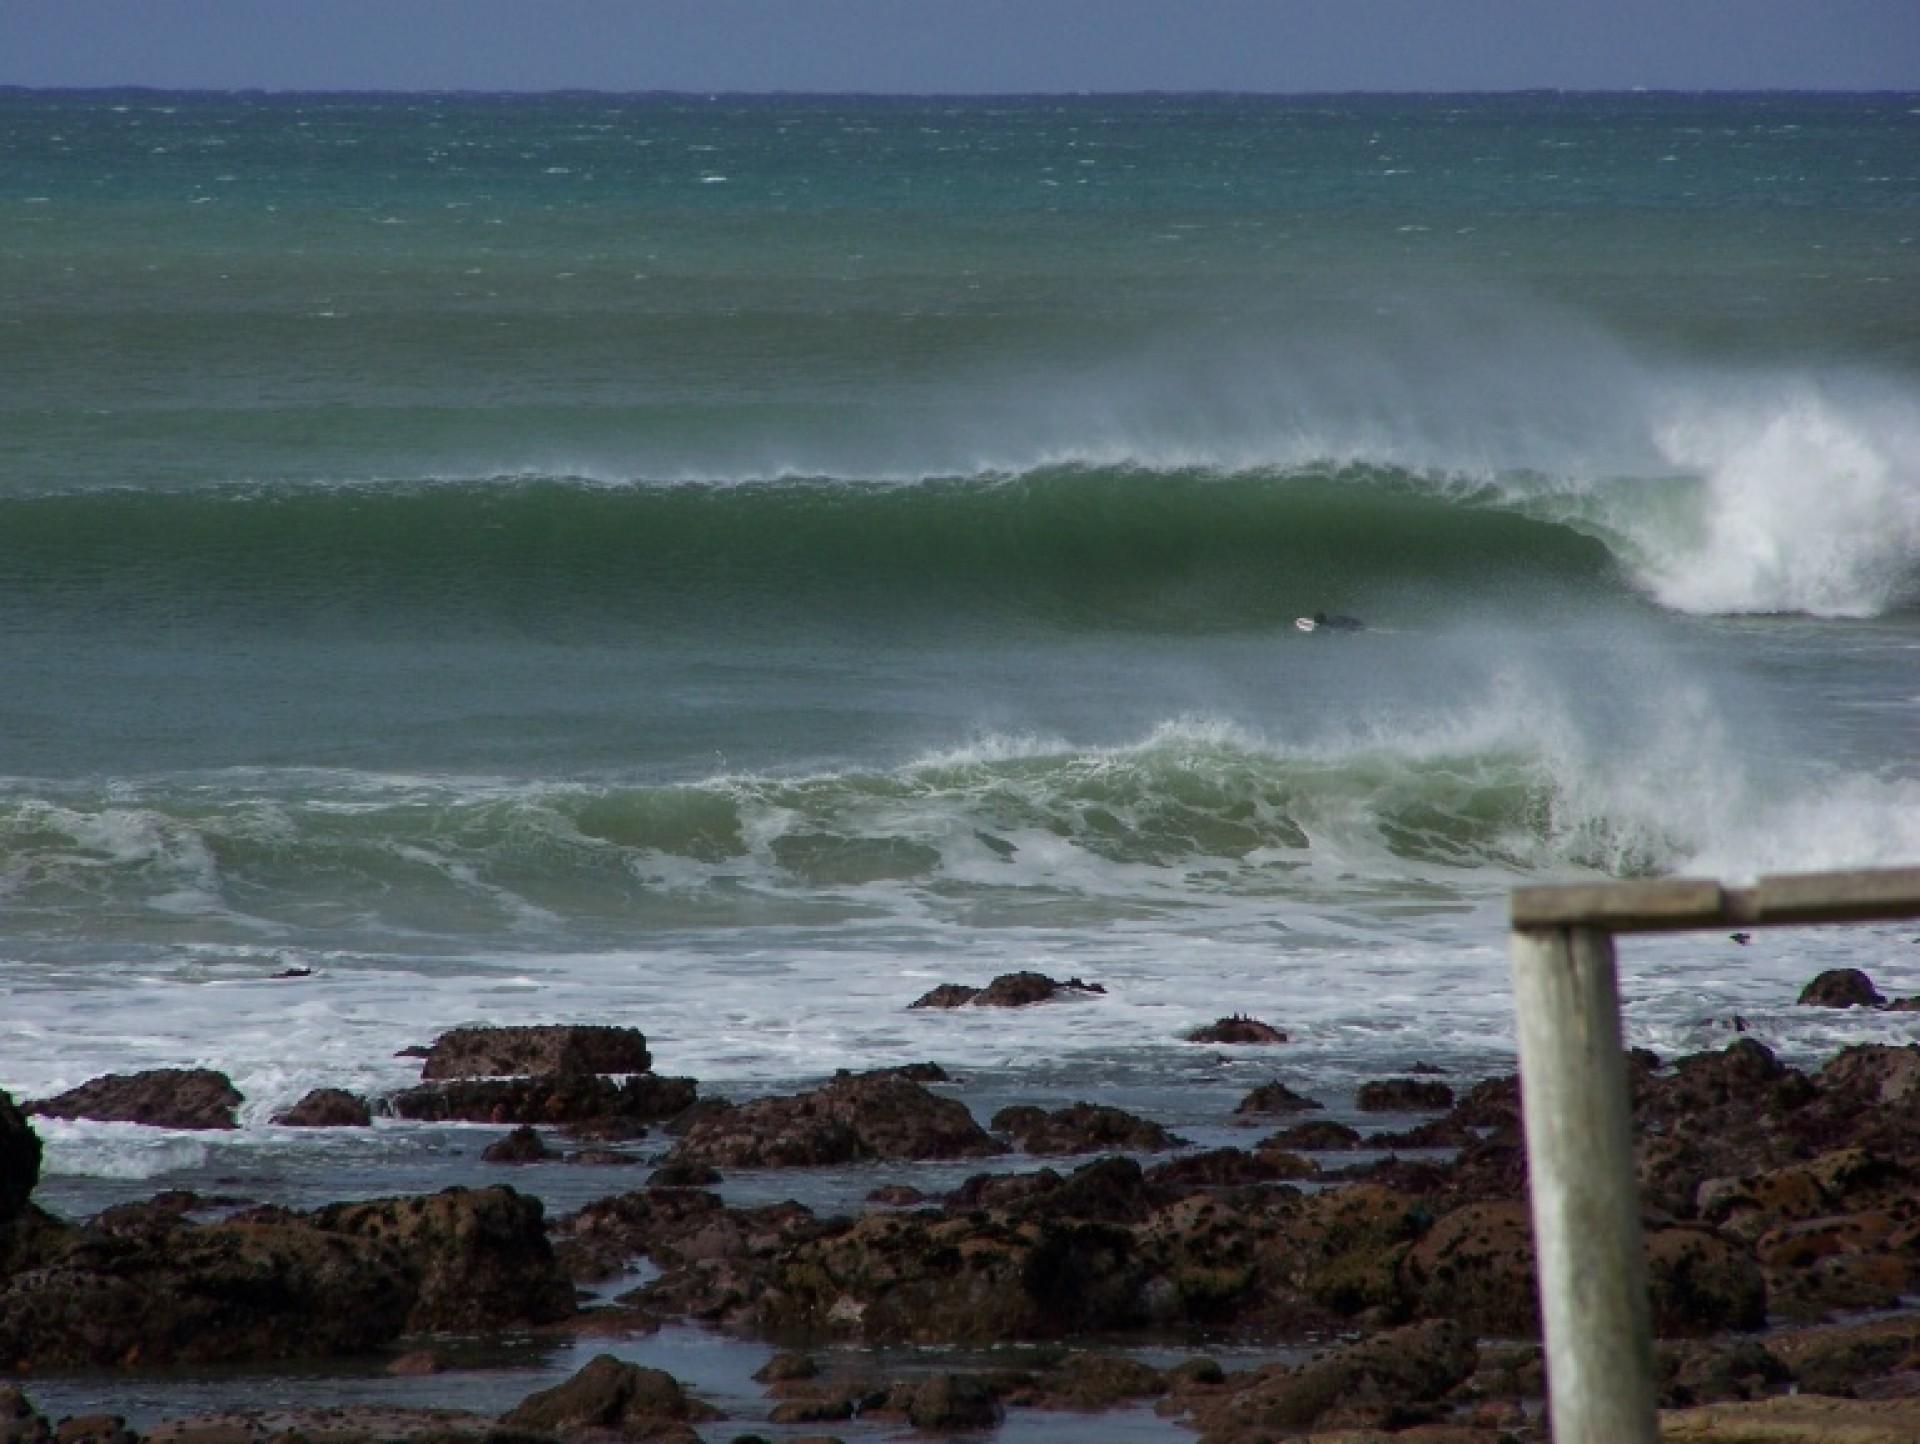 Gavin Rother's photo of Cape St. Francis